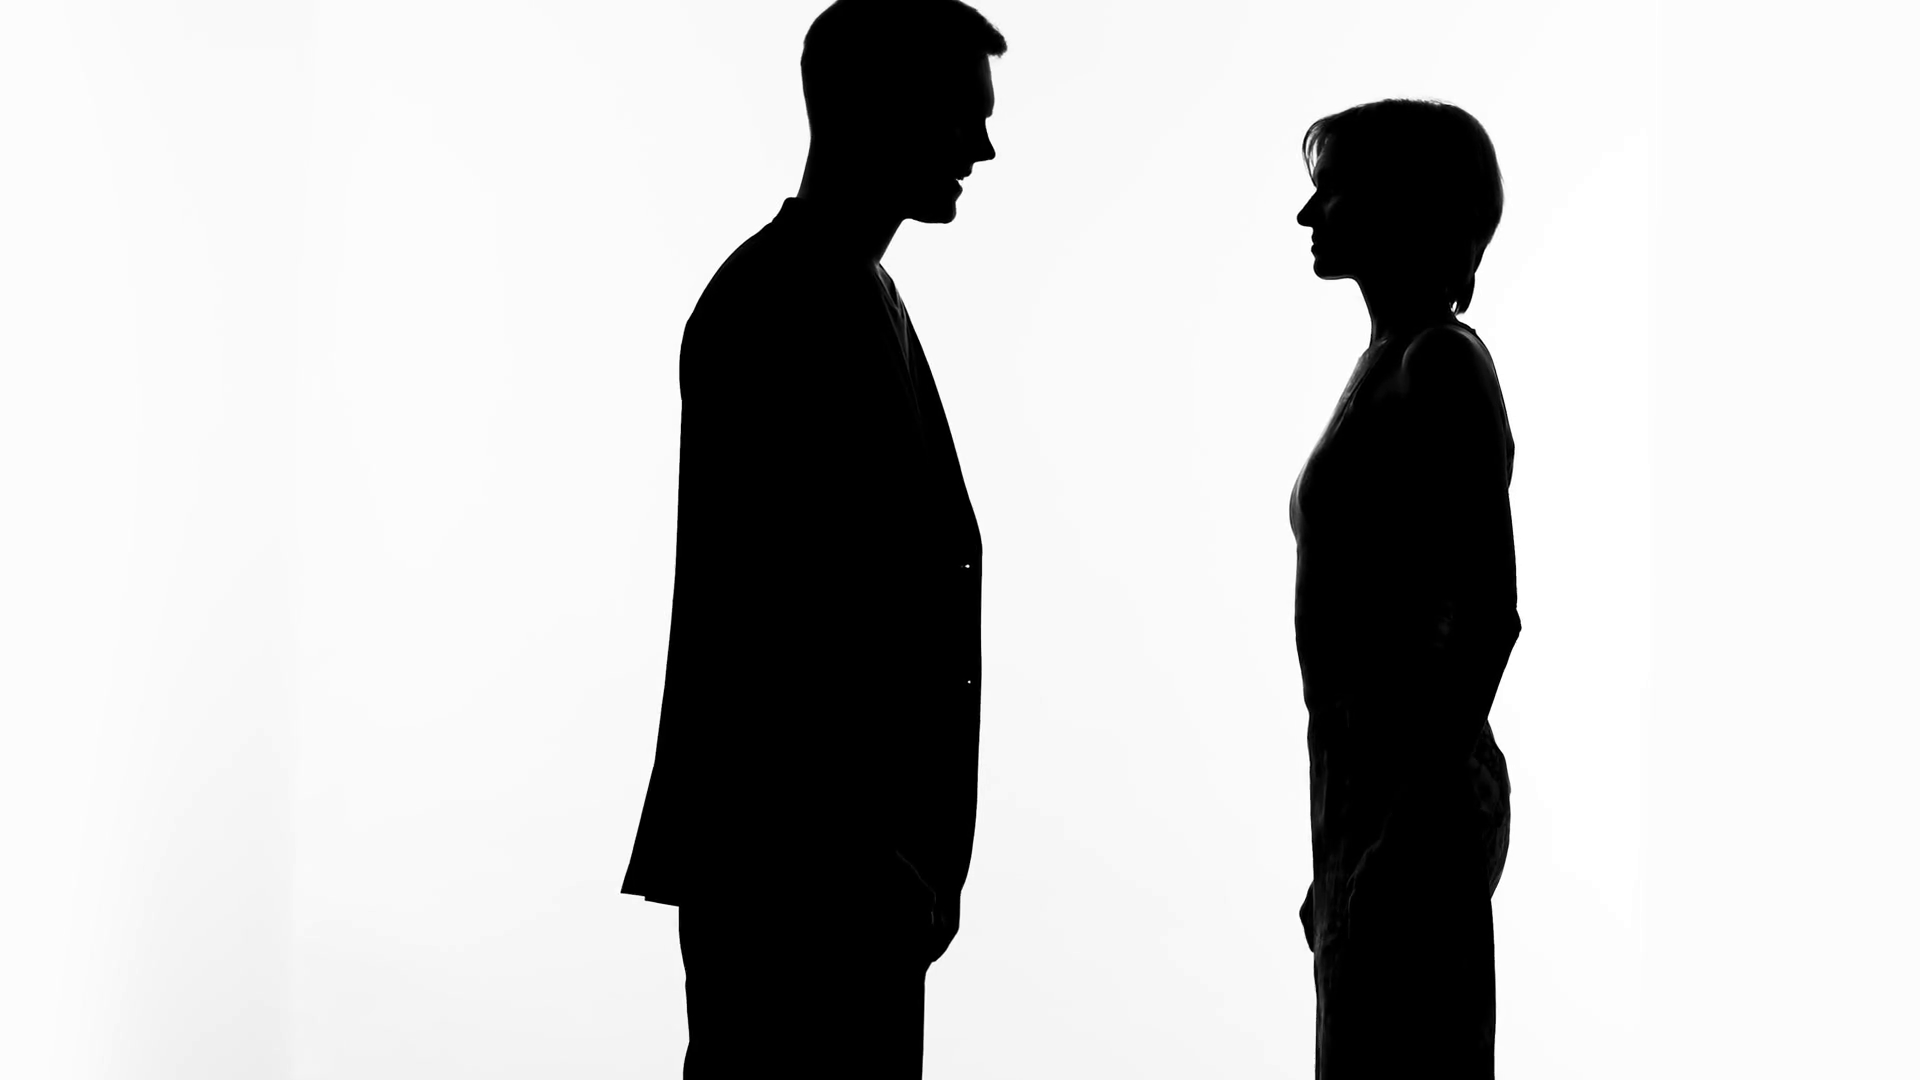 1920x1080 Male Silhouette Making Proposal To Woman, Marriage Offer, Romantic